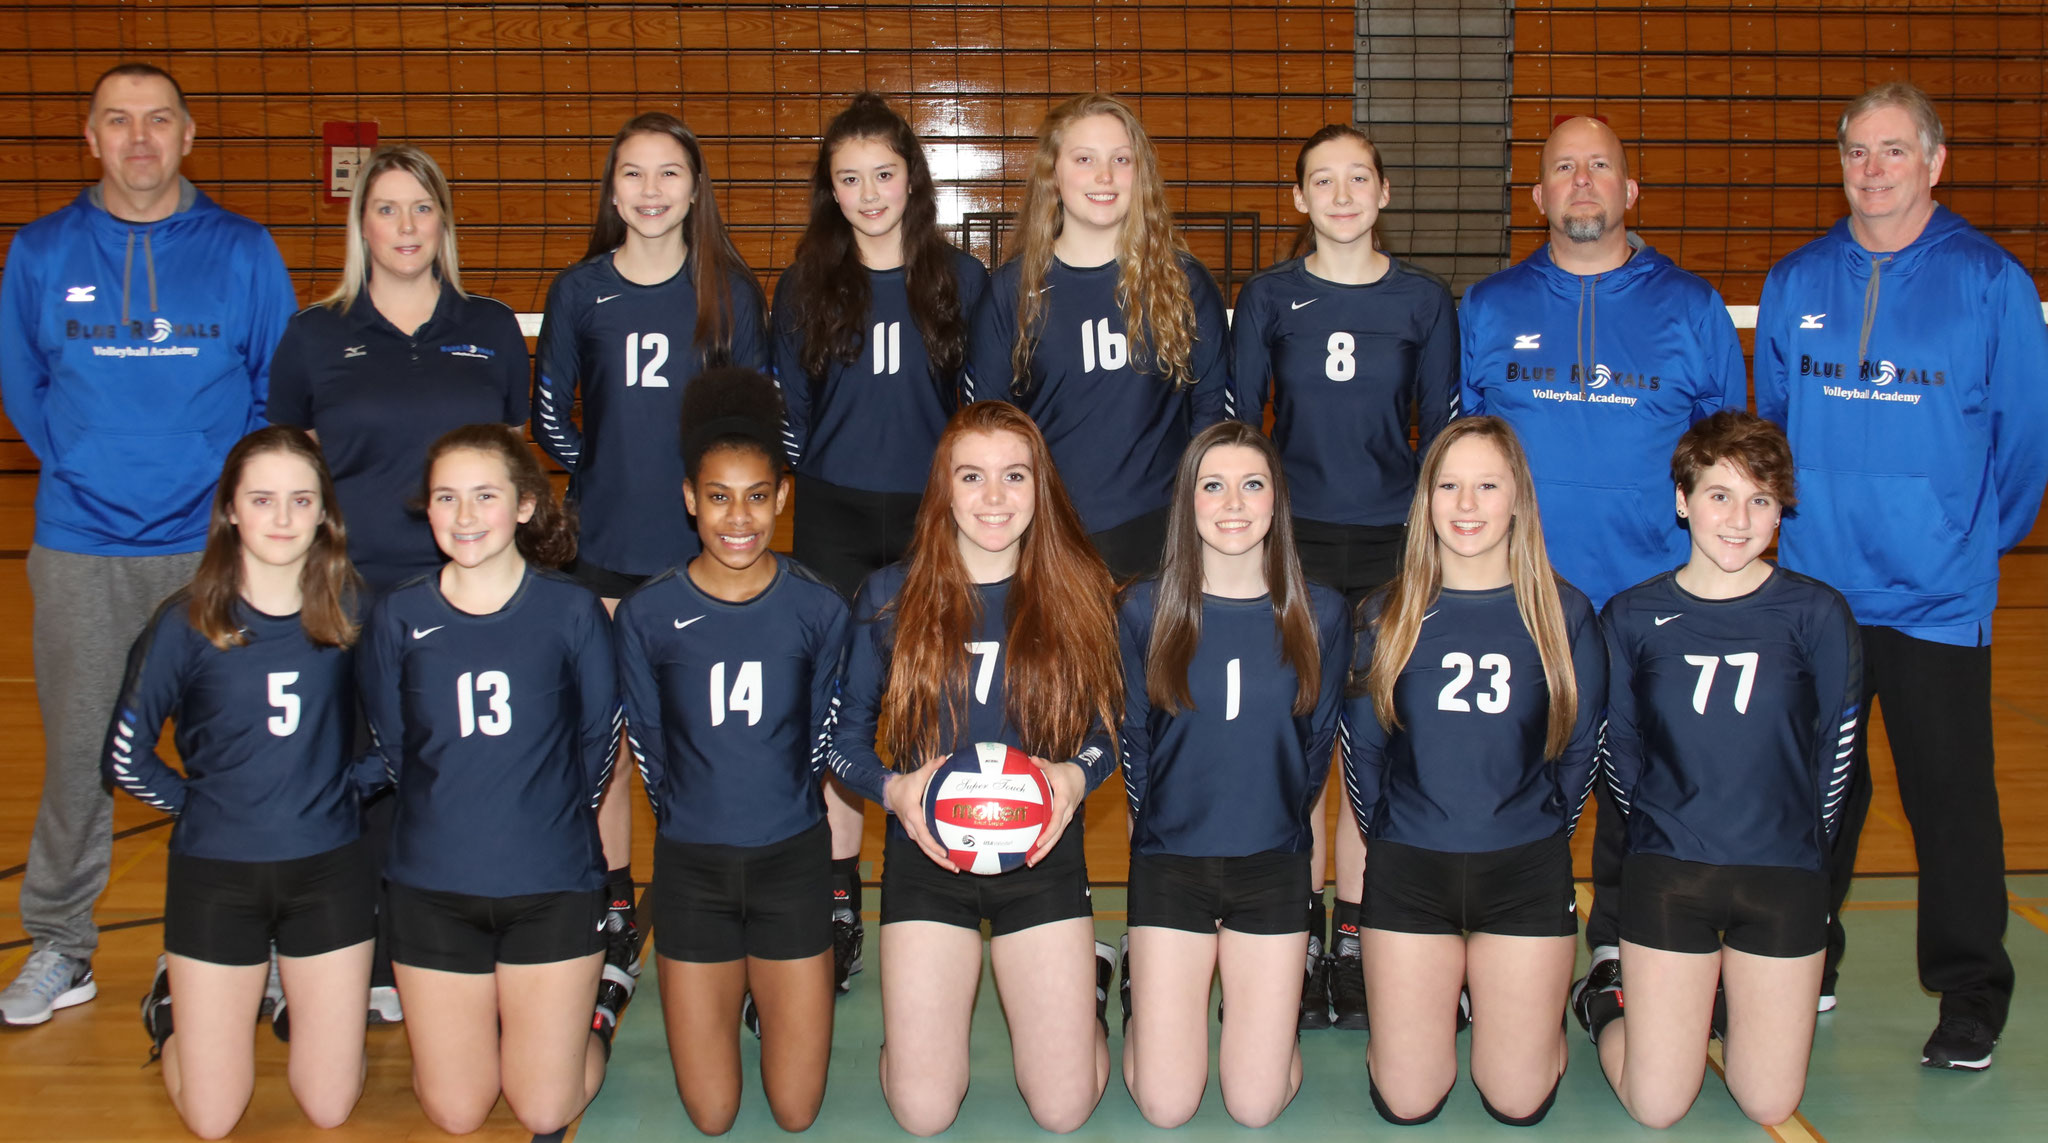 U15  National Team  - See Team Page for Individual Photos